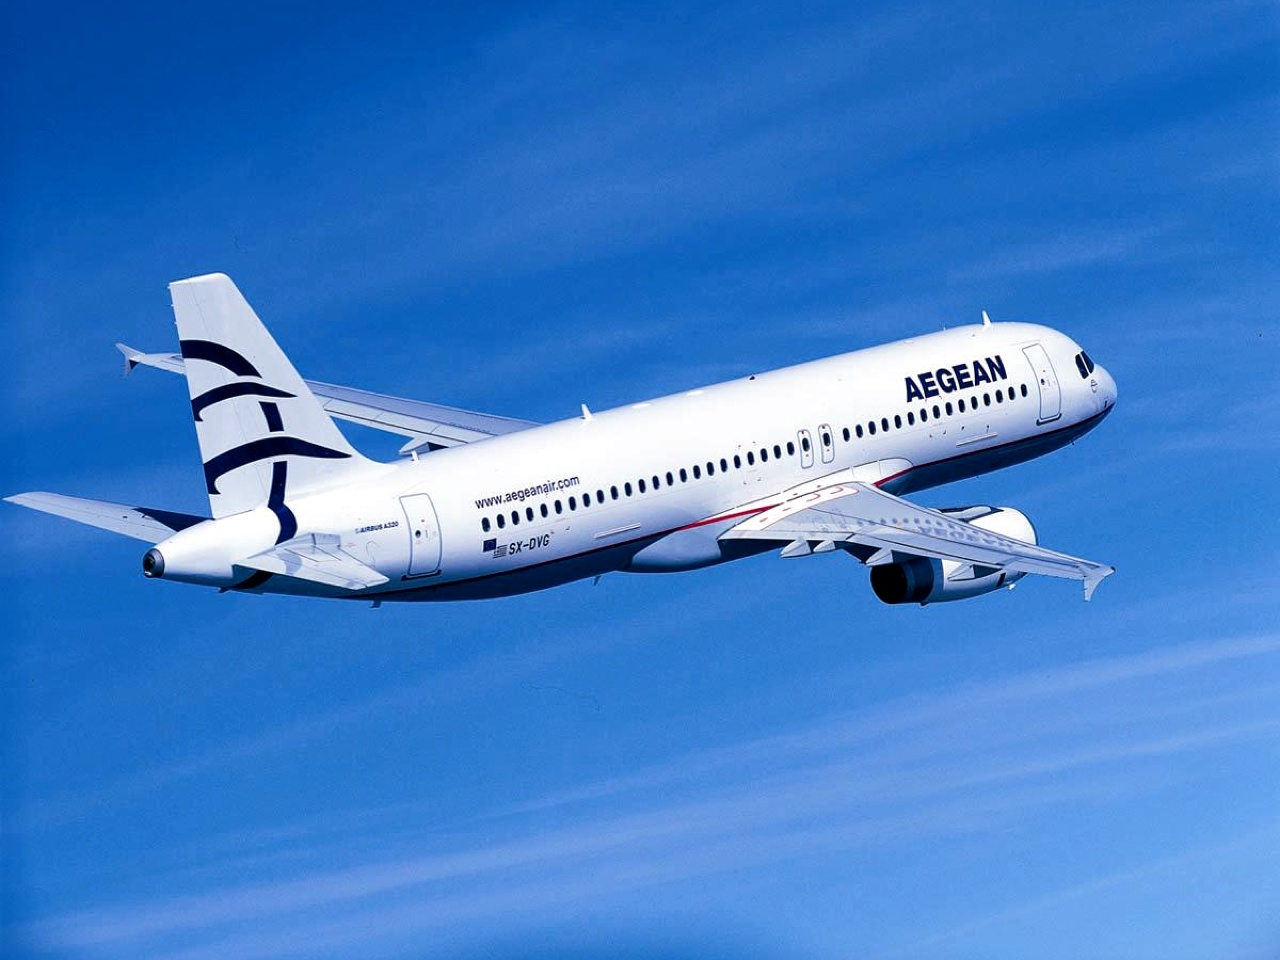 AEGEAN Provides An Easier Way To Manage Your Bookings